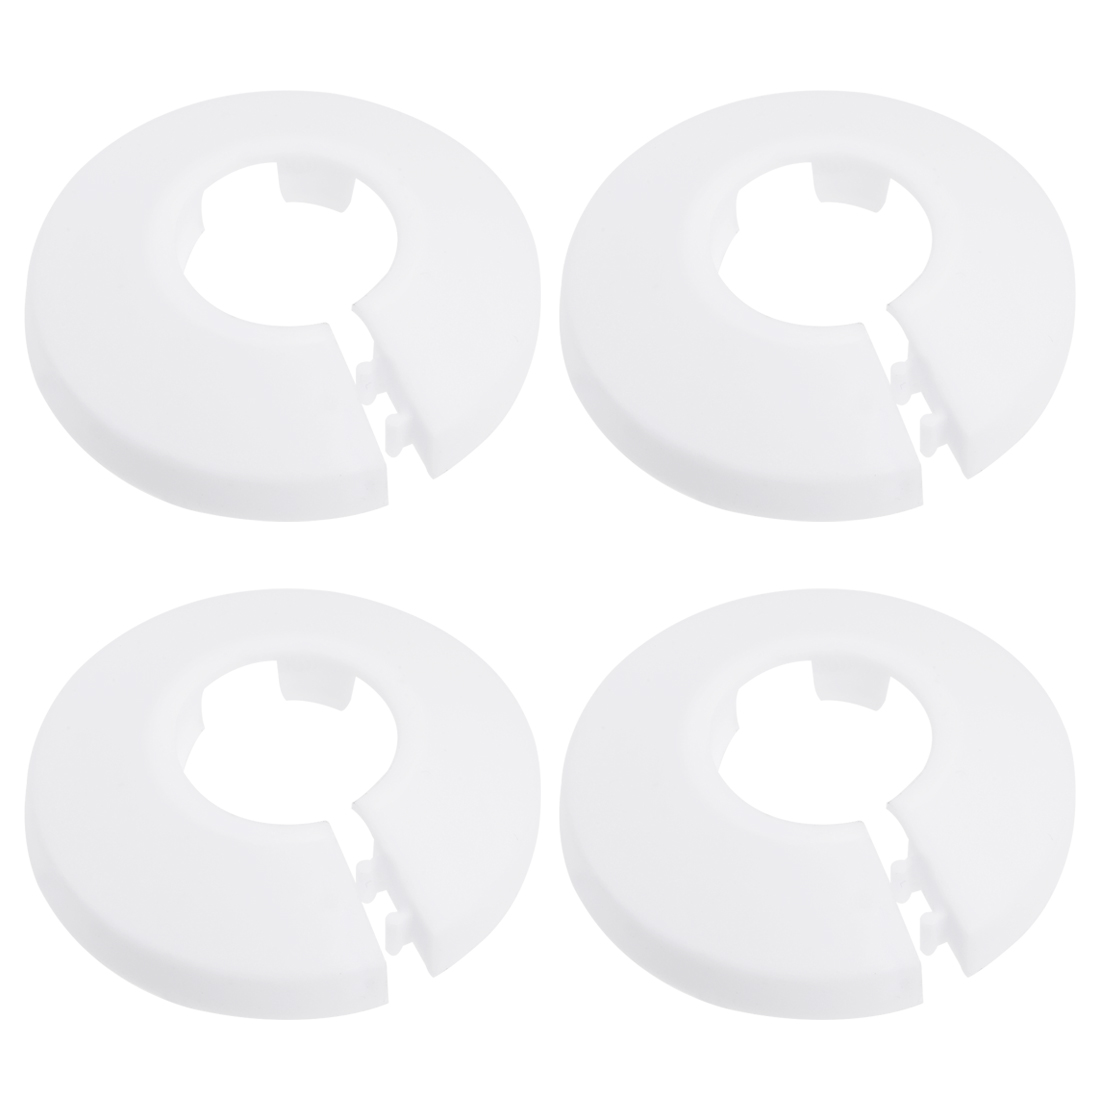 Uxcell Pipe Collar 21mm PP Radiator Escutcheon Water Pipe Cover Decoration White 4 Pcs